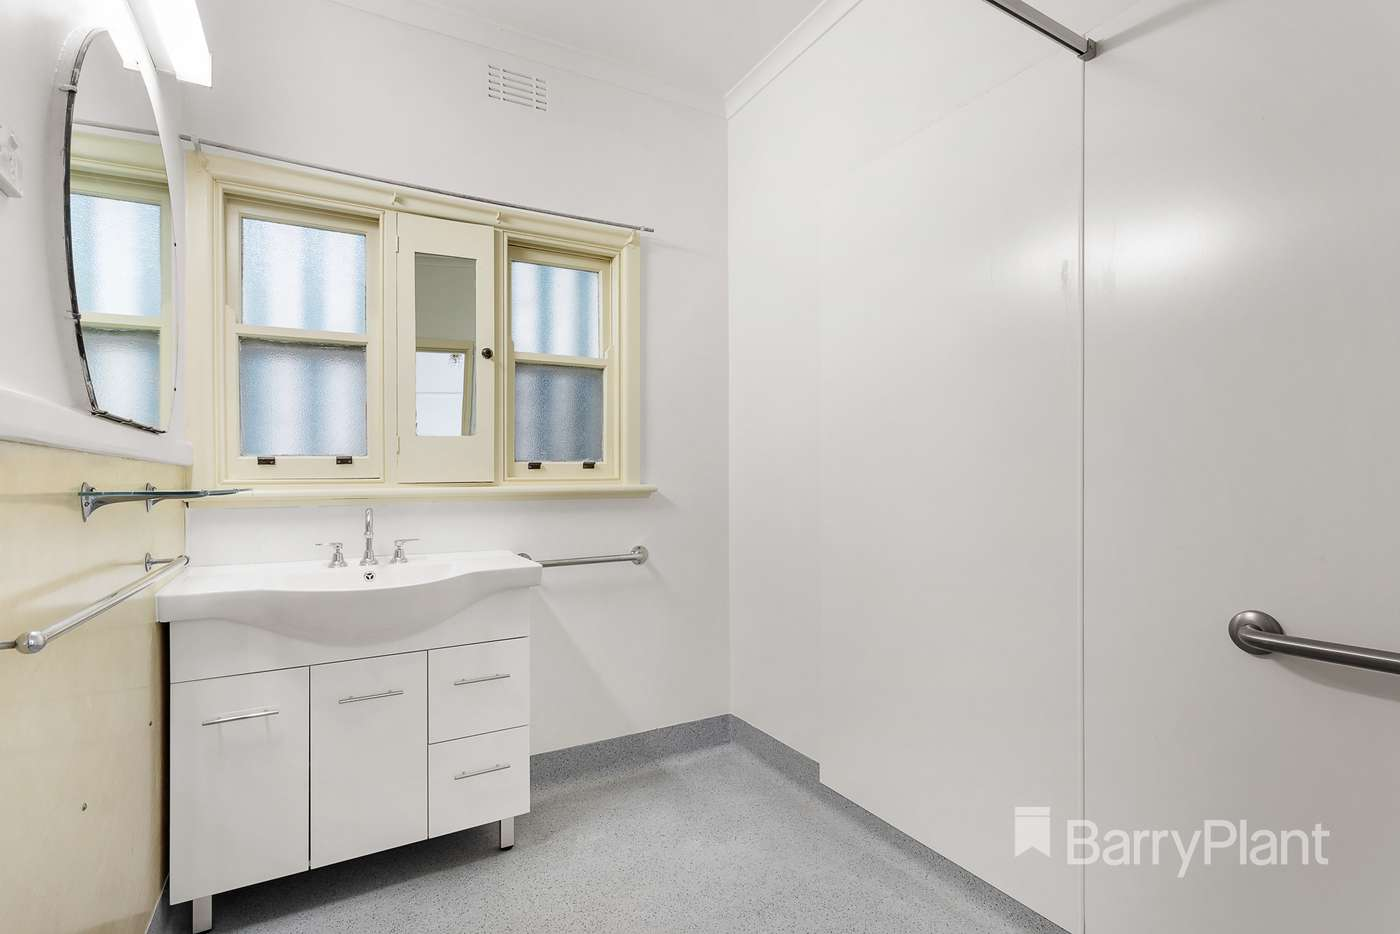 Fifth view of Homely house listing, 6 Gordon Street, Beaumaris VIC 3193